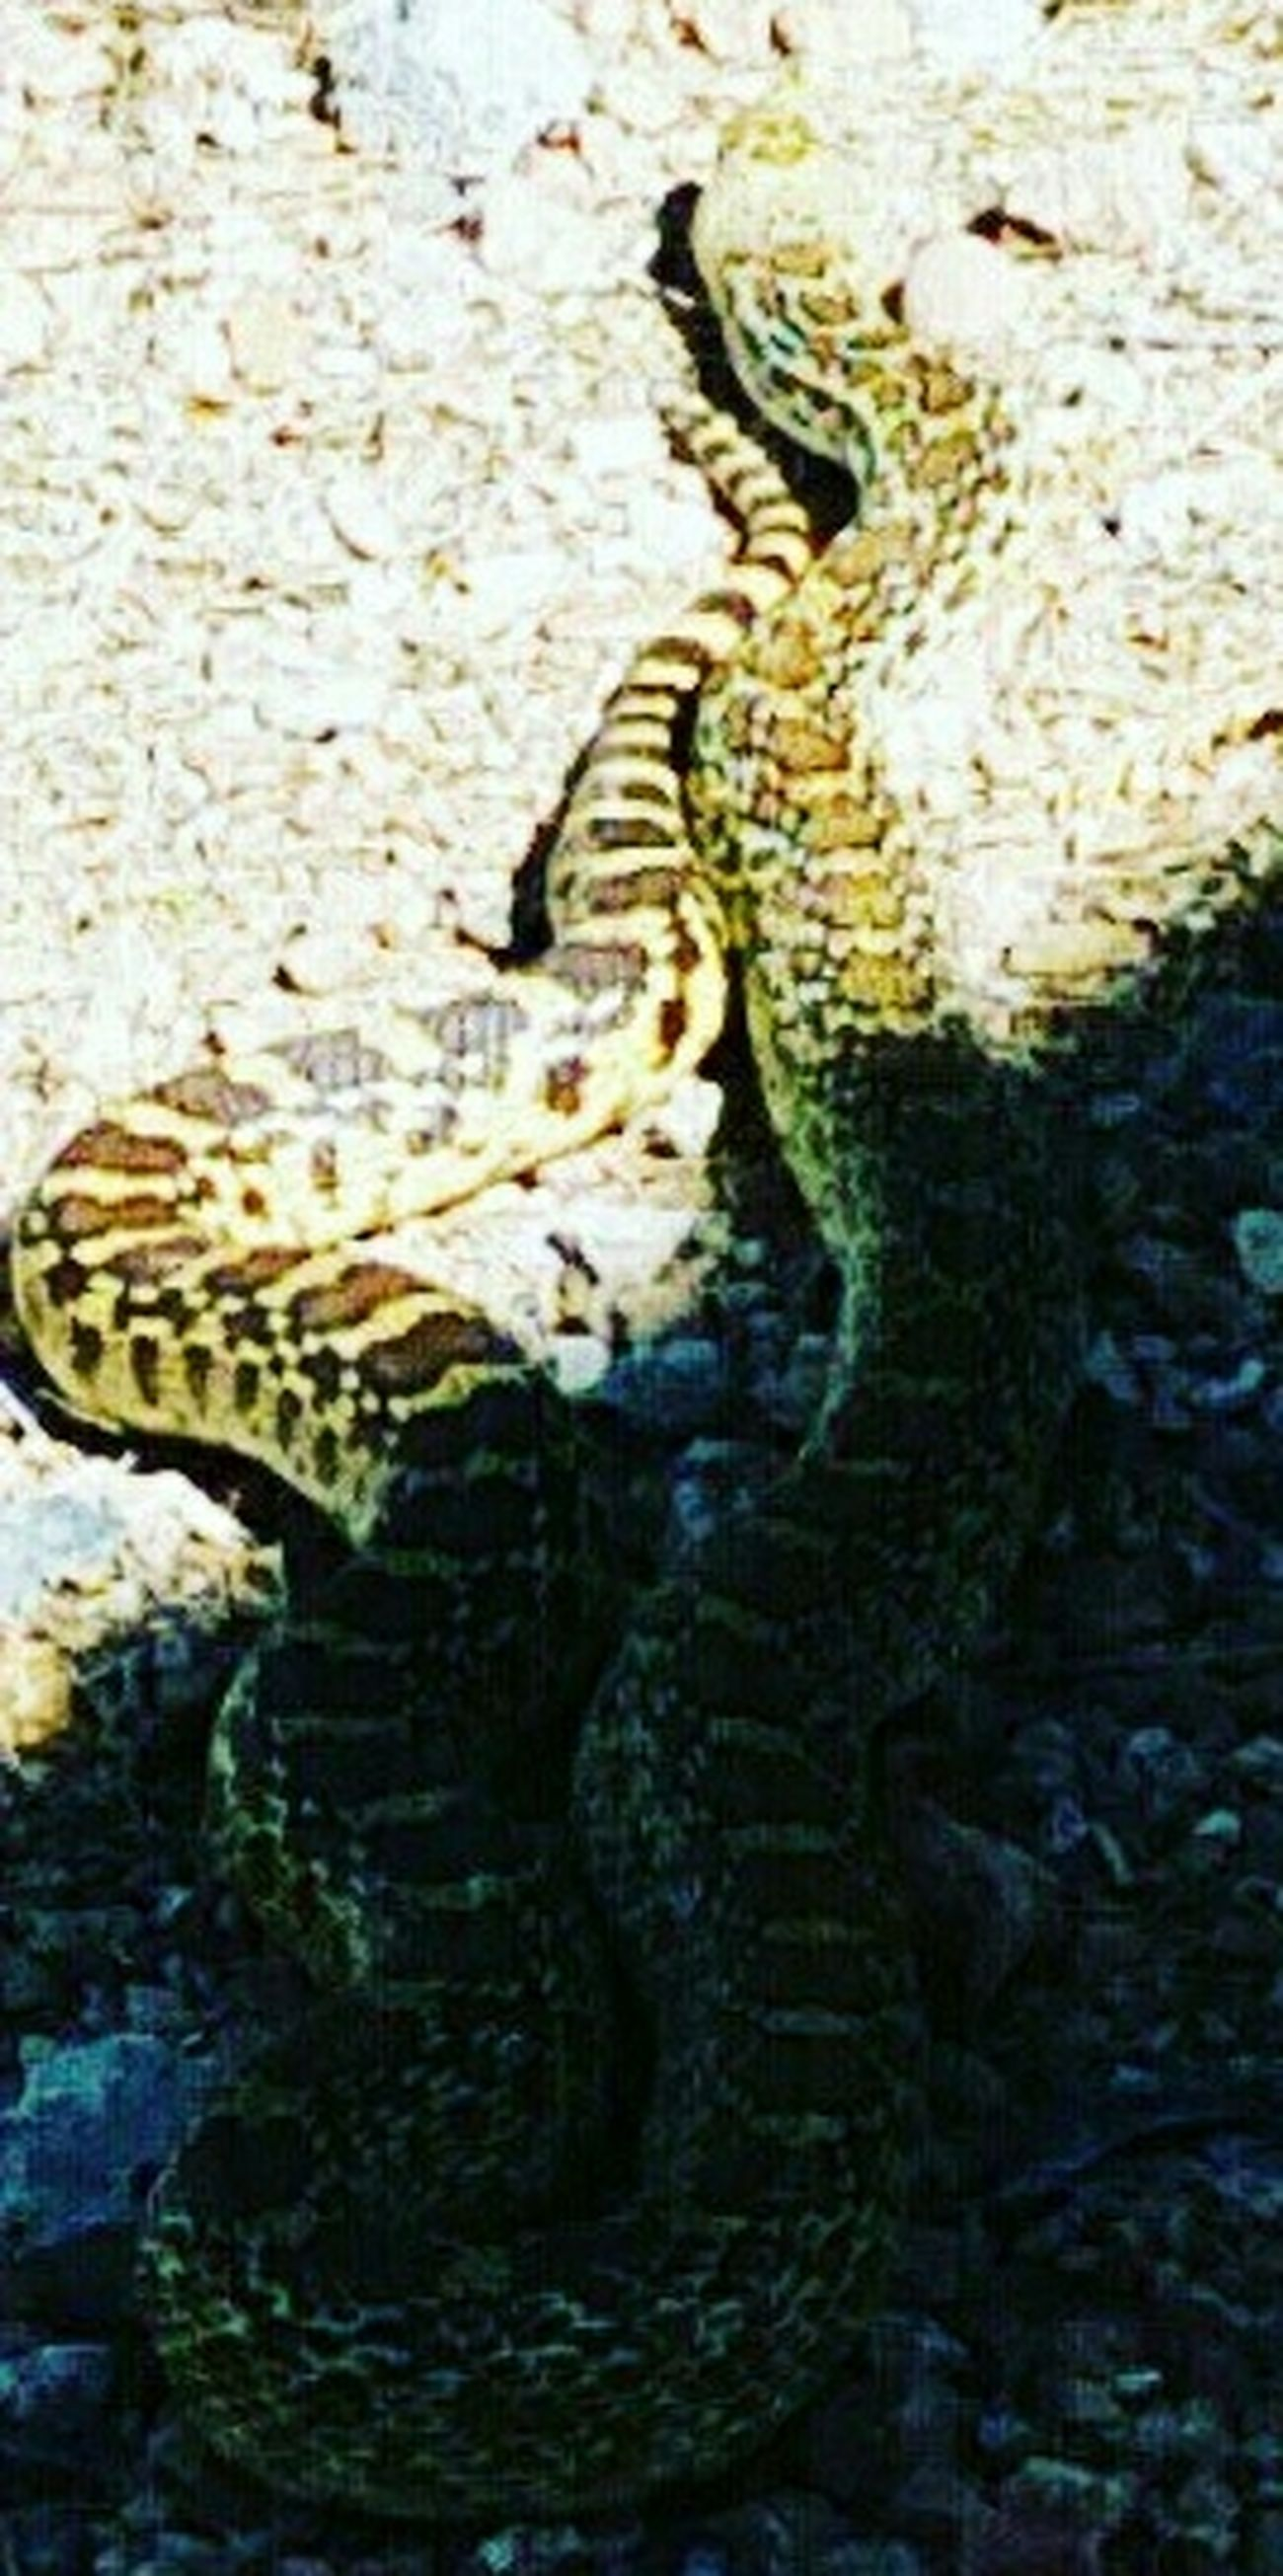 Outdoors Full Frame Surroundings Deadlycreatures Deadly Snake Momentsinthesun Arizona Sonoran Desert My Back Yard ExploreEverything Overhead View Diamondback Rattle Snake Poisonous High Angle View Landscape DONT BLINK !